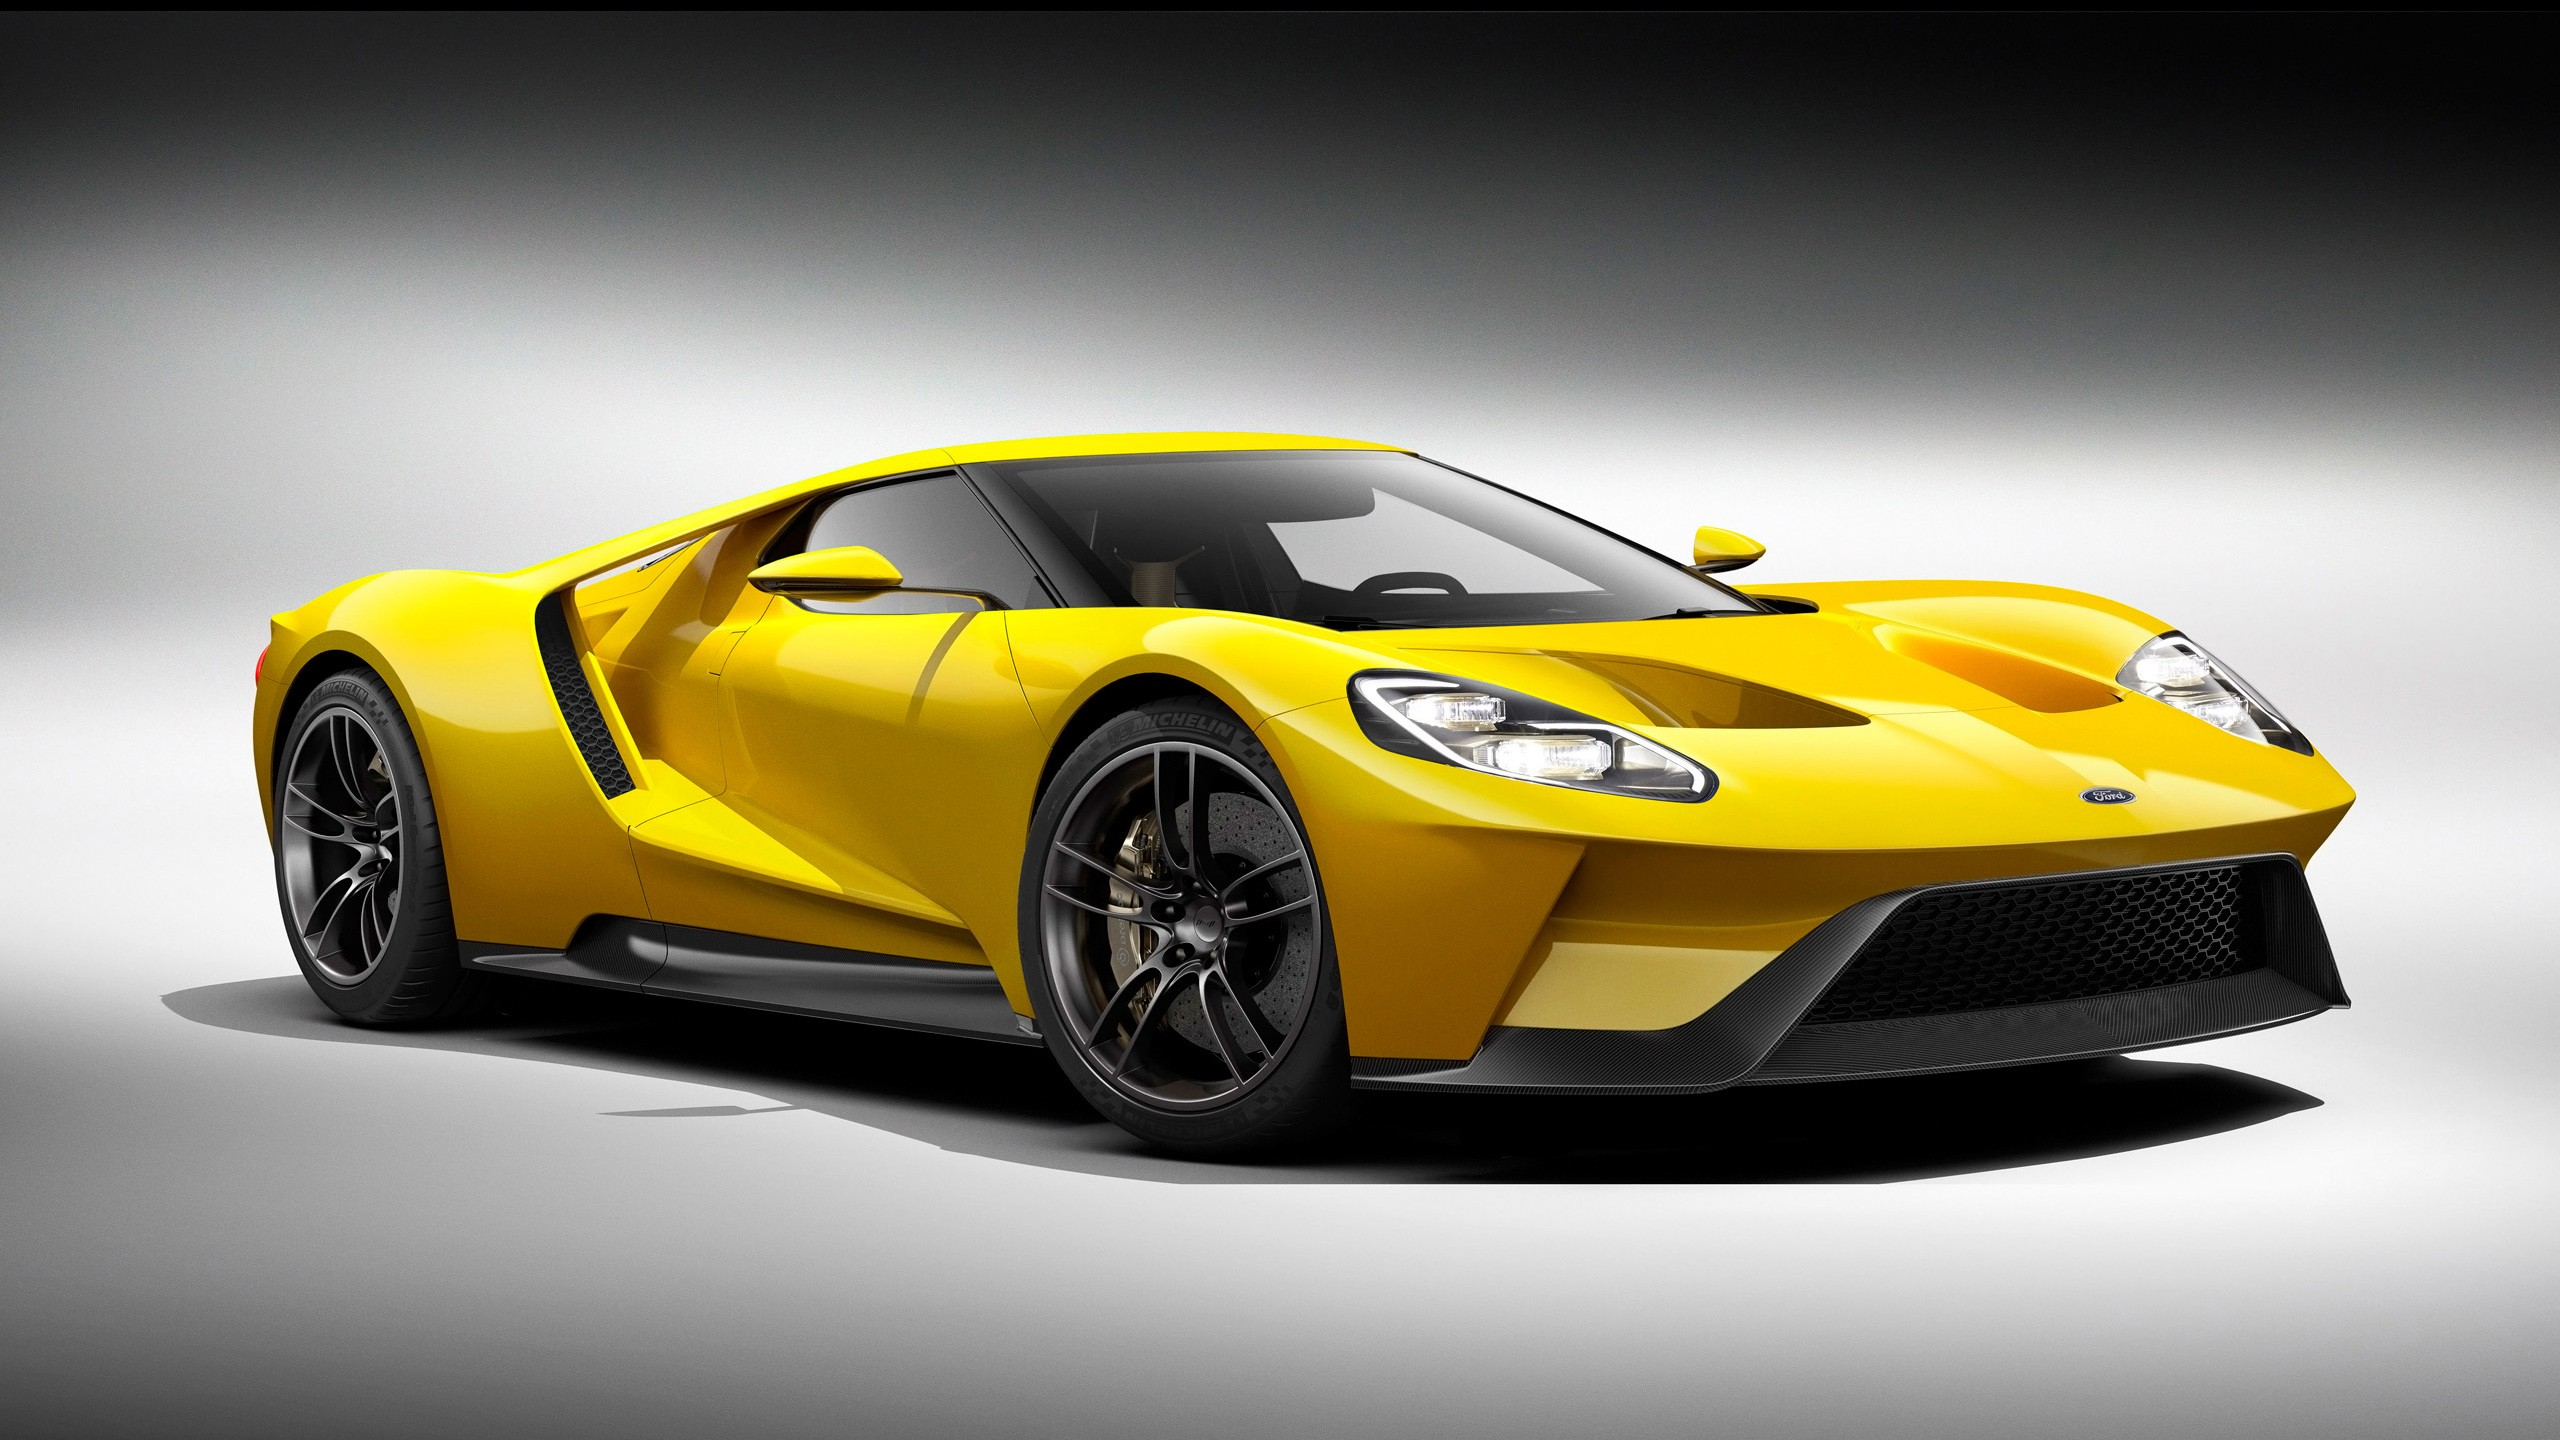 Ford Gt Supercars American Cars 2017 4k Uhd Widescreen: Ford GT 2016 Wallpaper